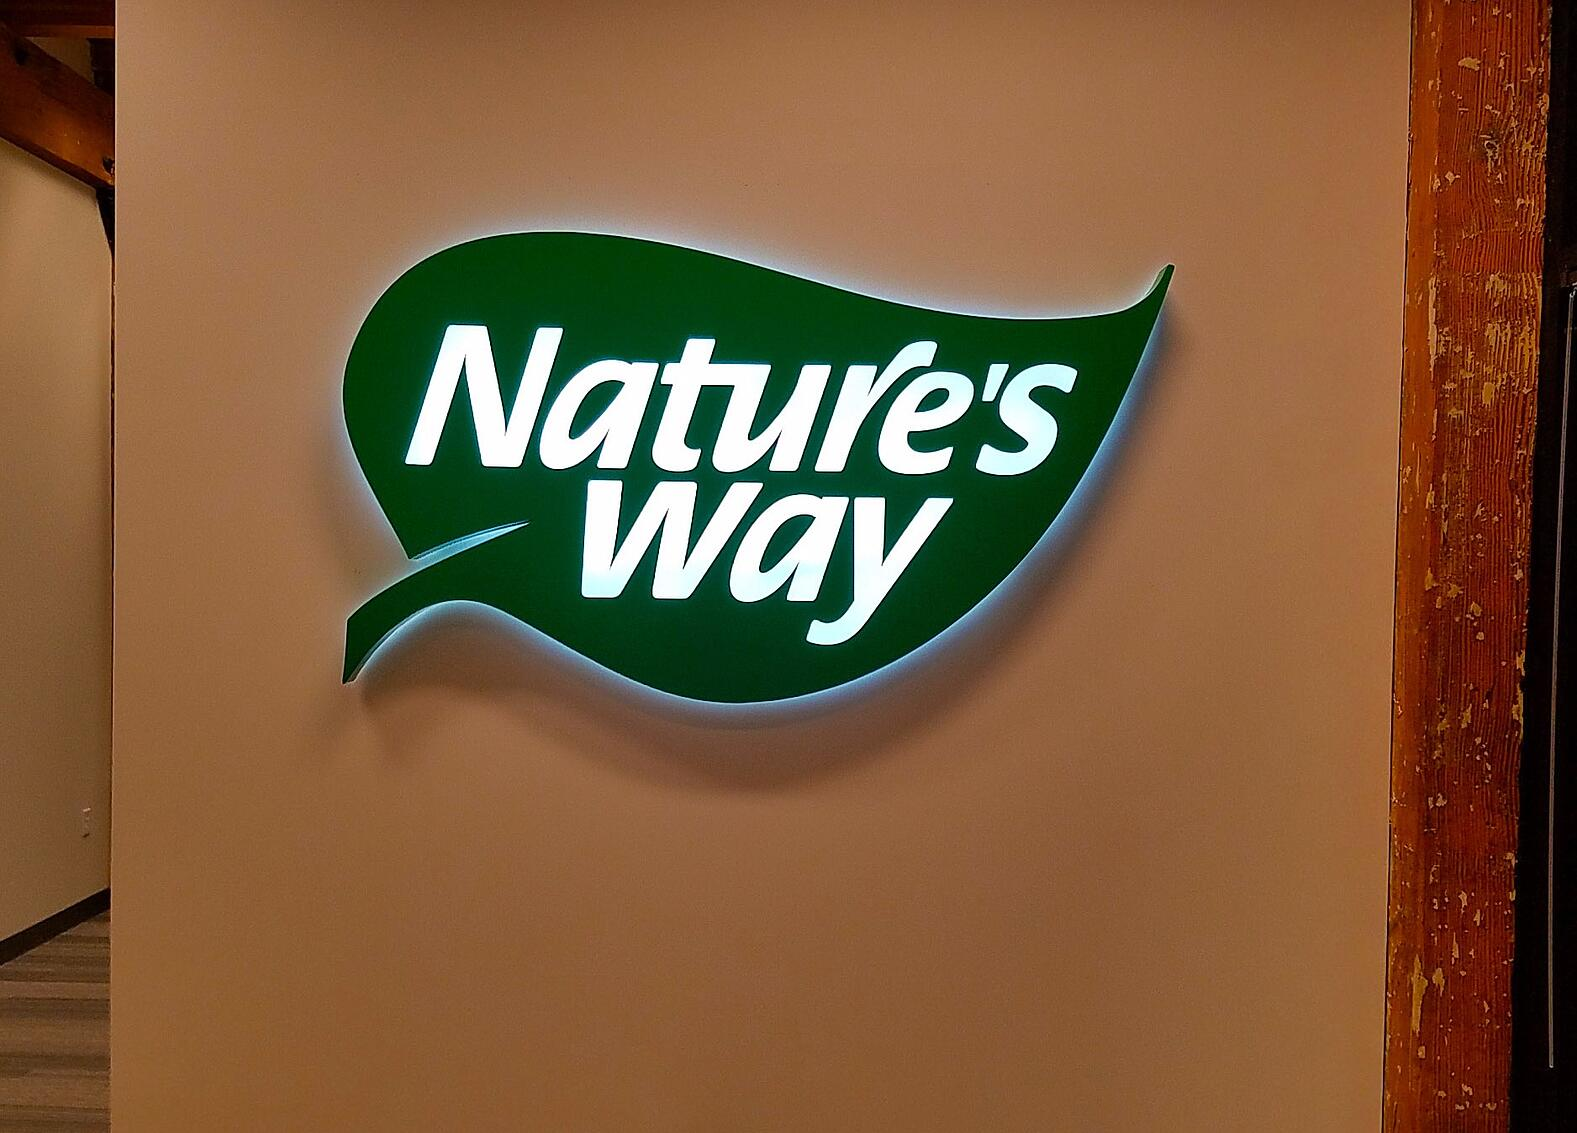 Natures Way LED Halo Sign.jpg